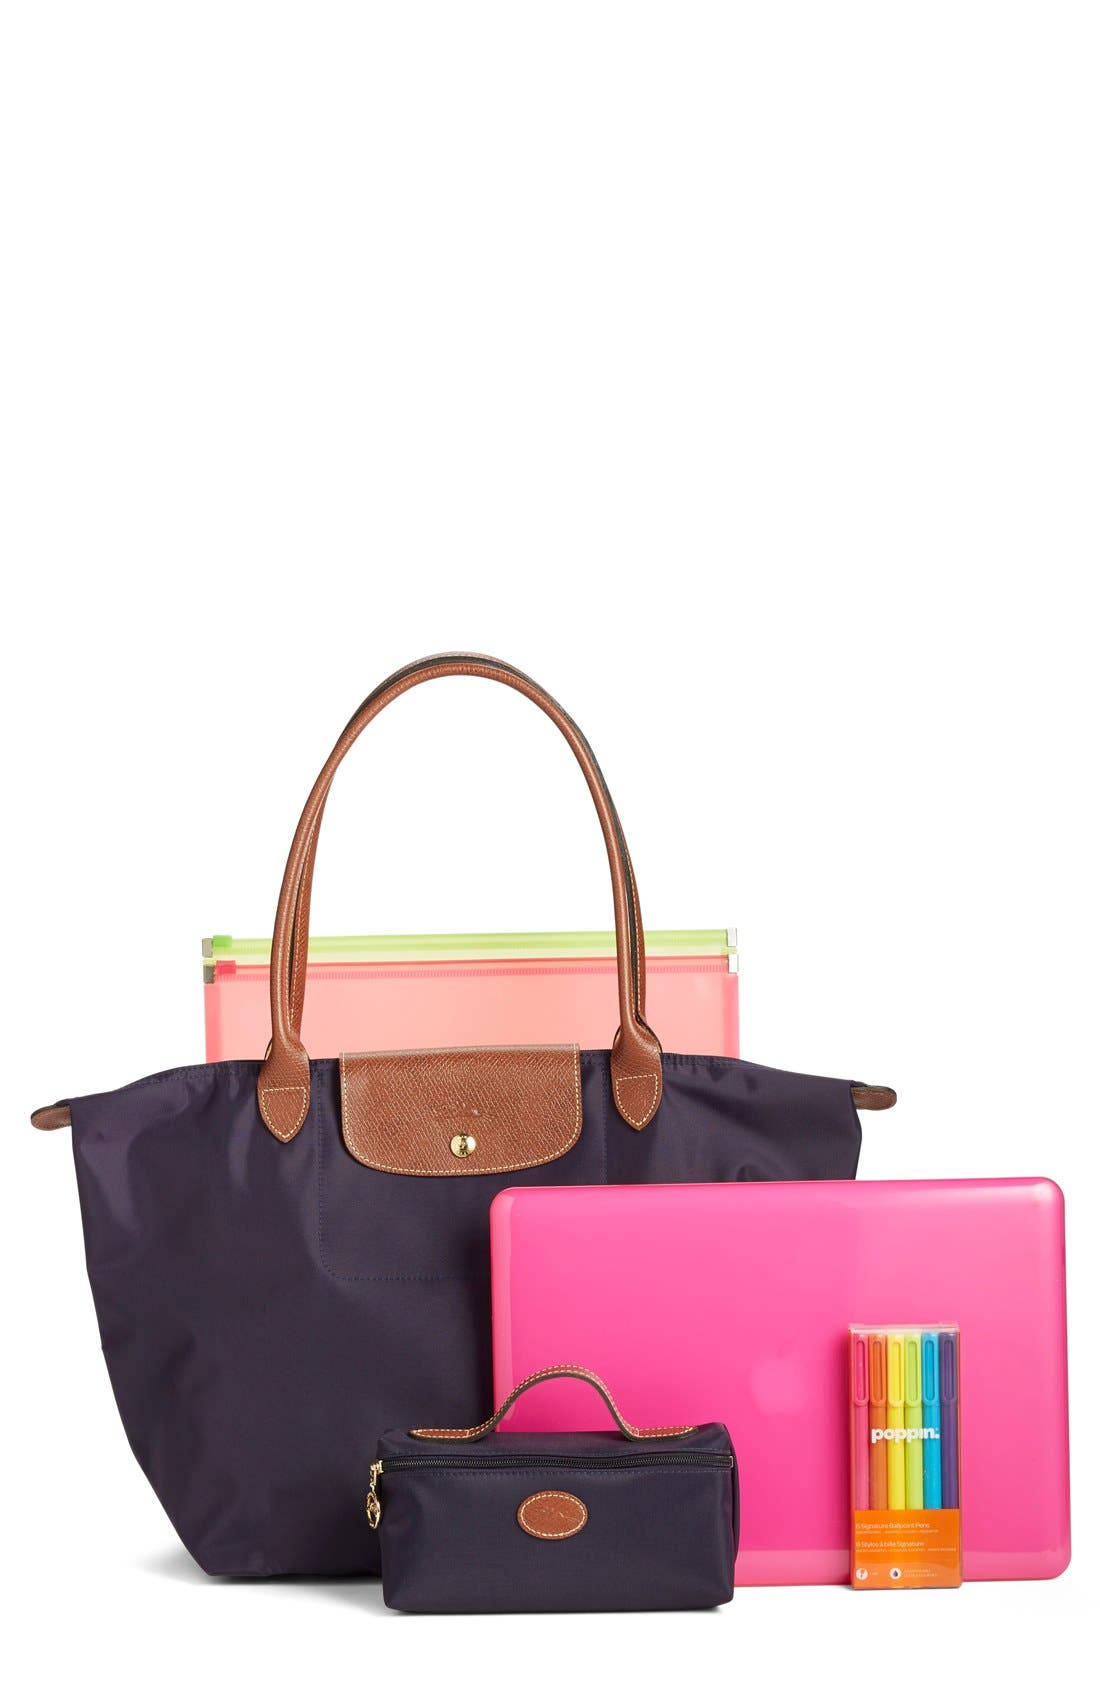 Longchamp Tote & Accessories